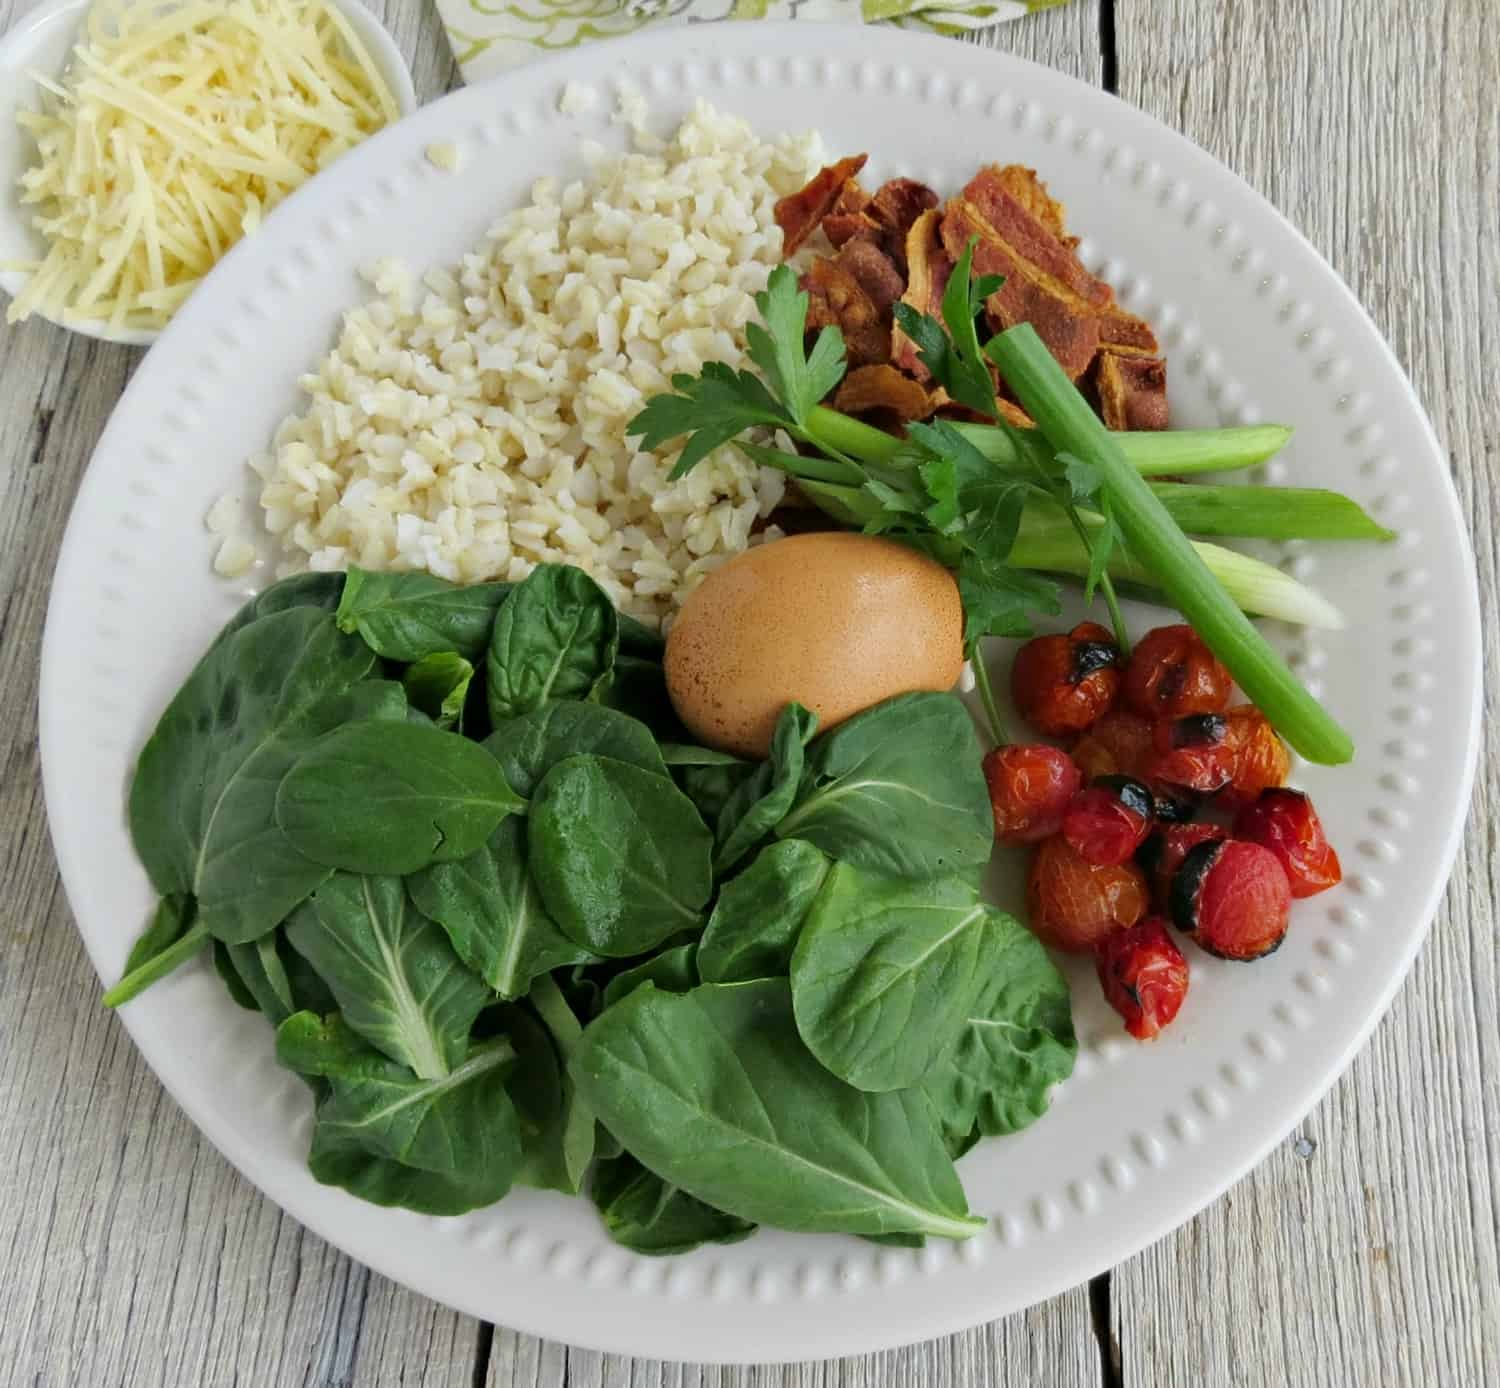 Ingredients for Hearty Rice Bowl with Roasted Tomatoes, Bacon and Spinach Recipe